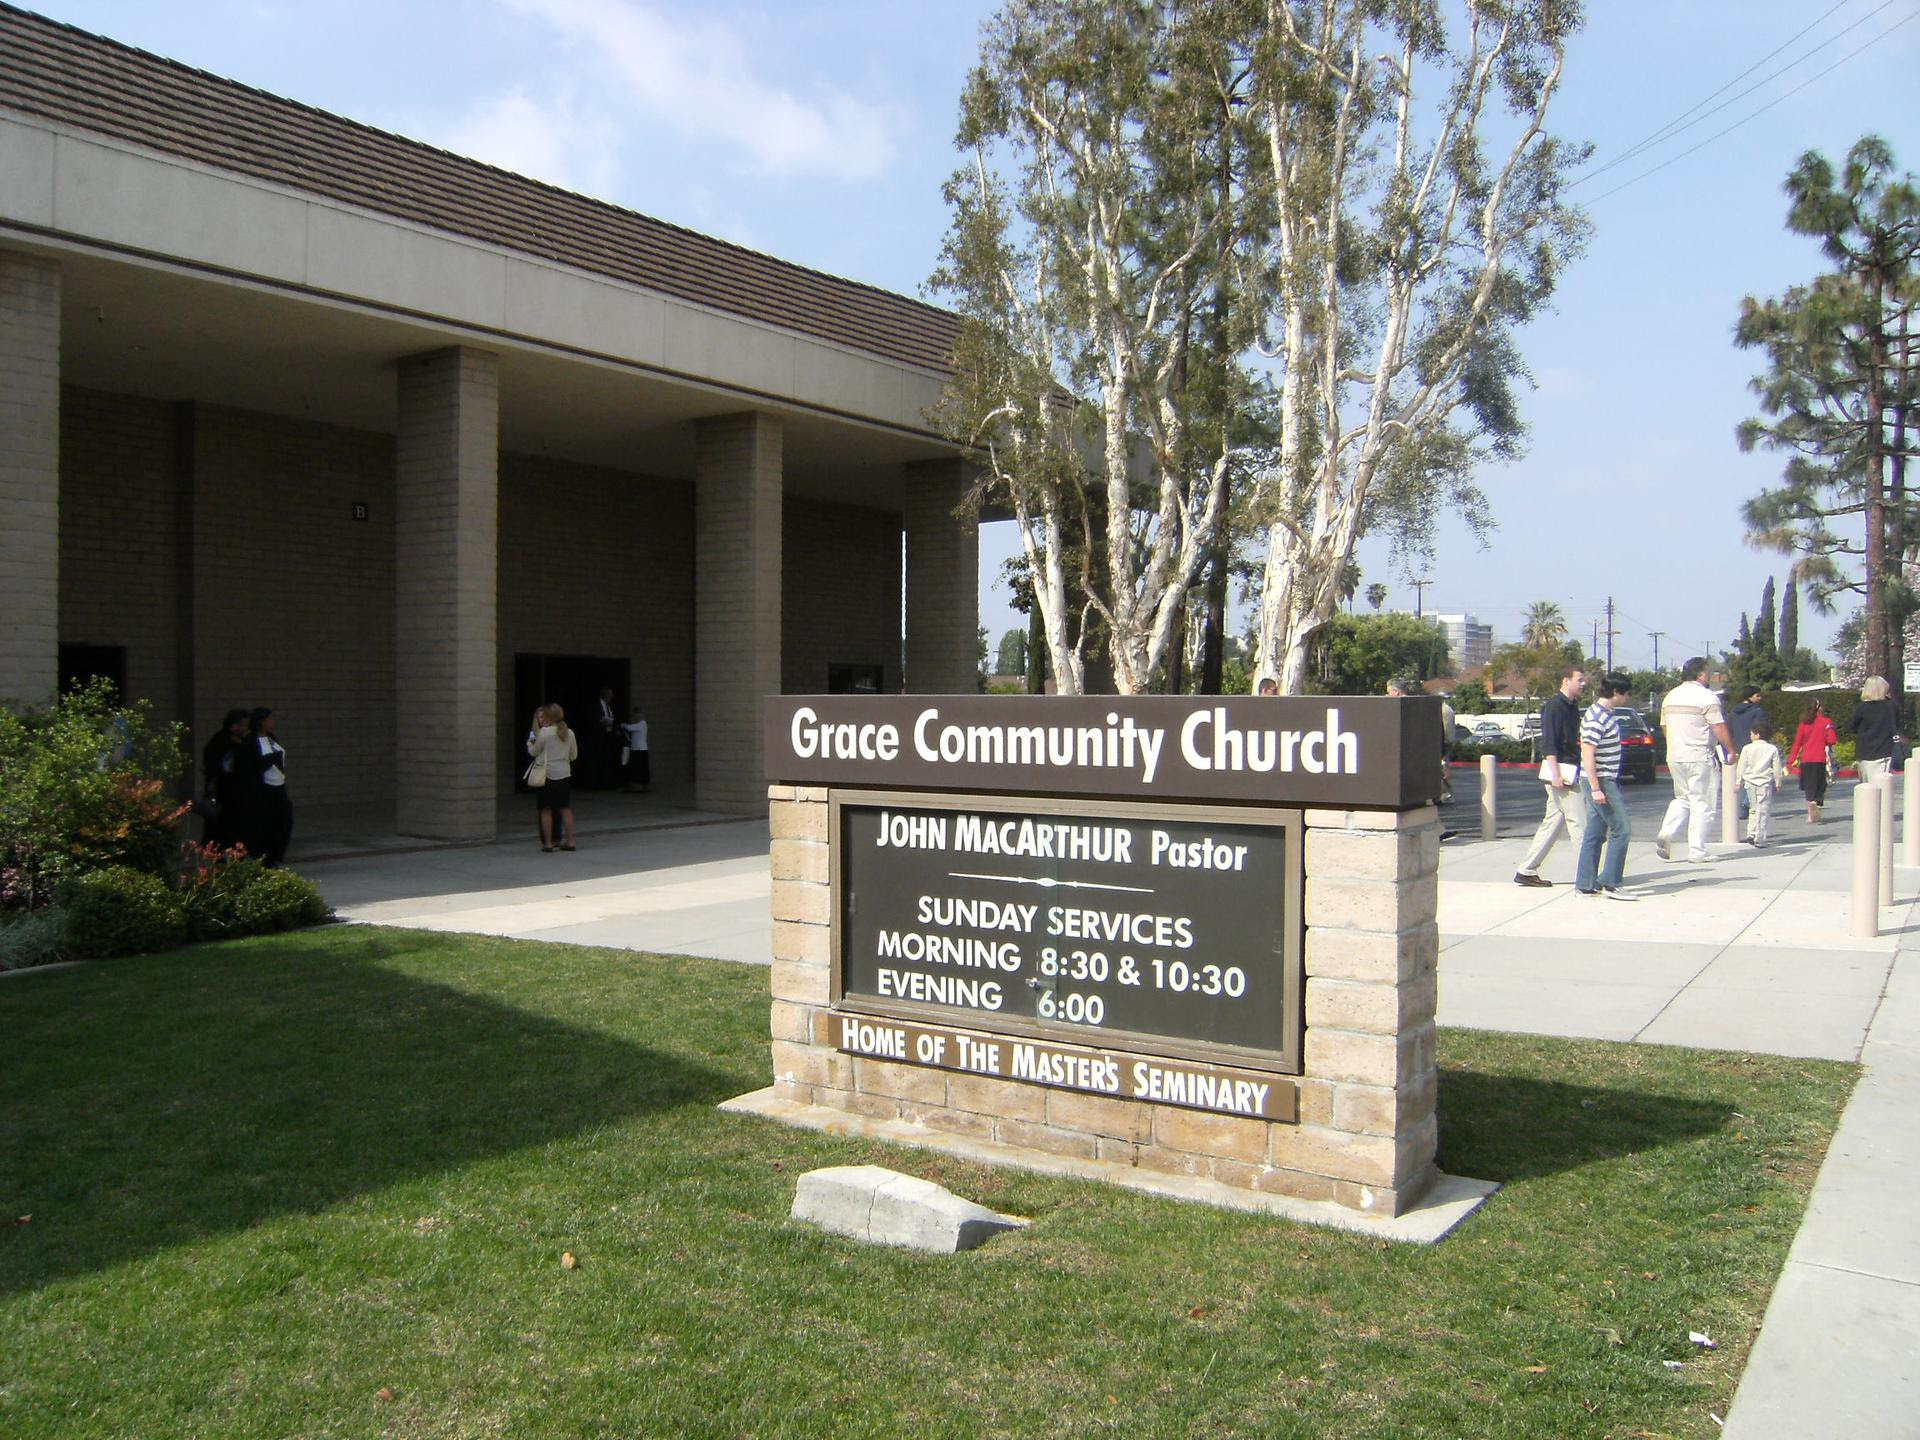 A photo of the sign and building for Grace Community Church, pastored by John MacArthur